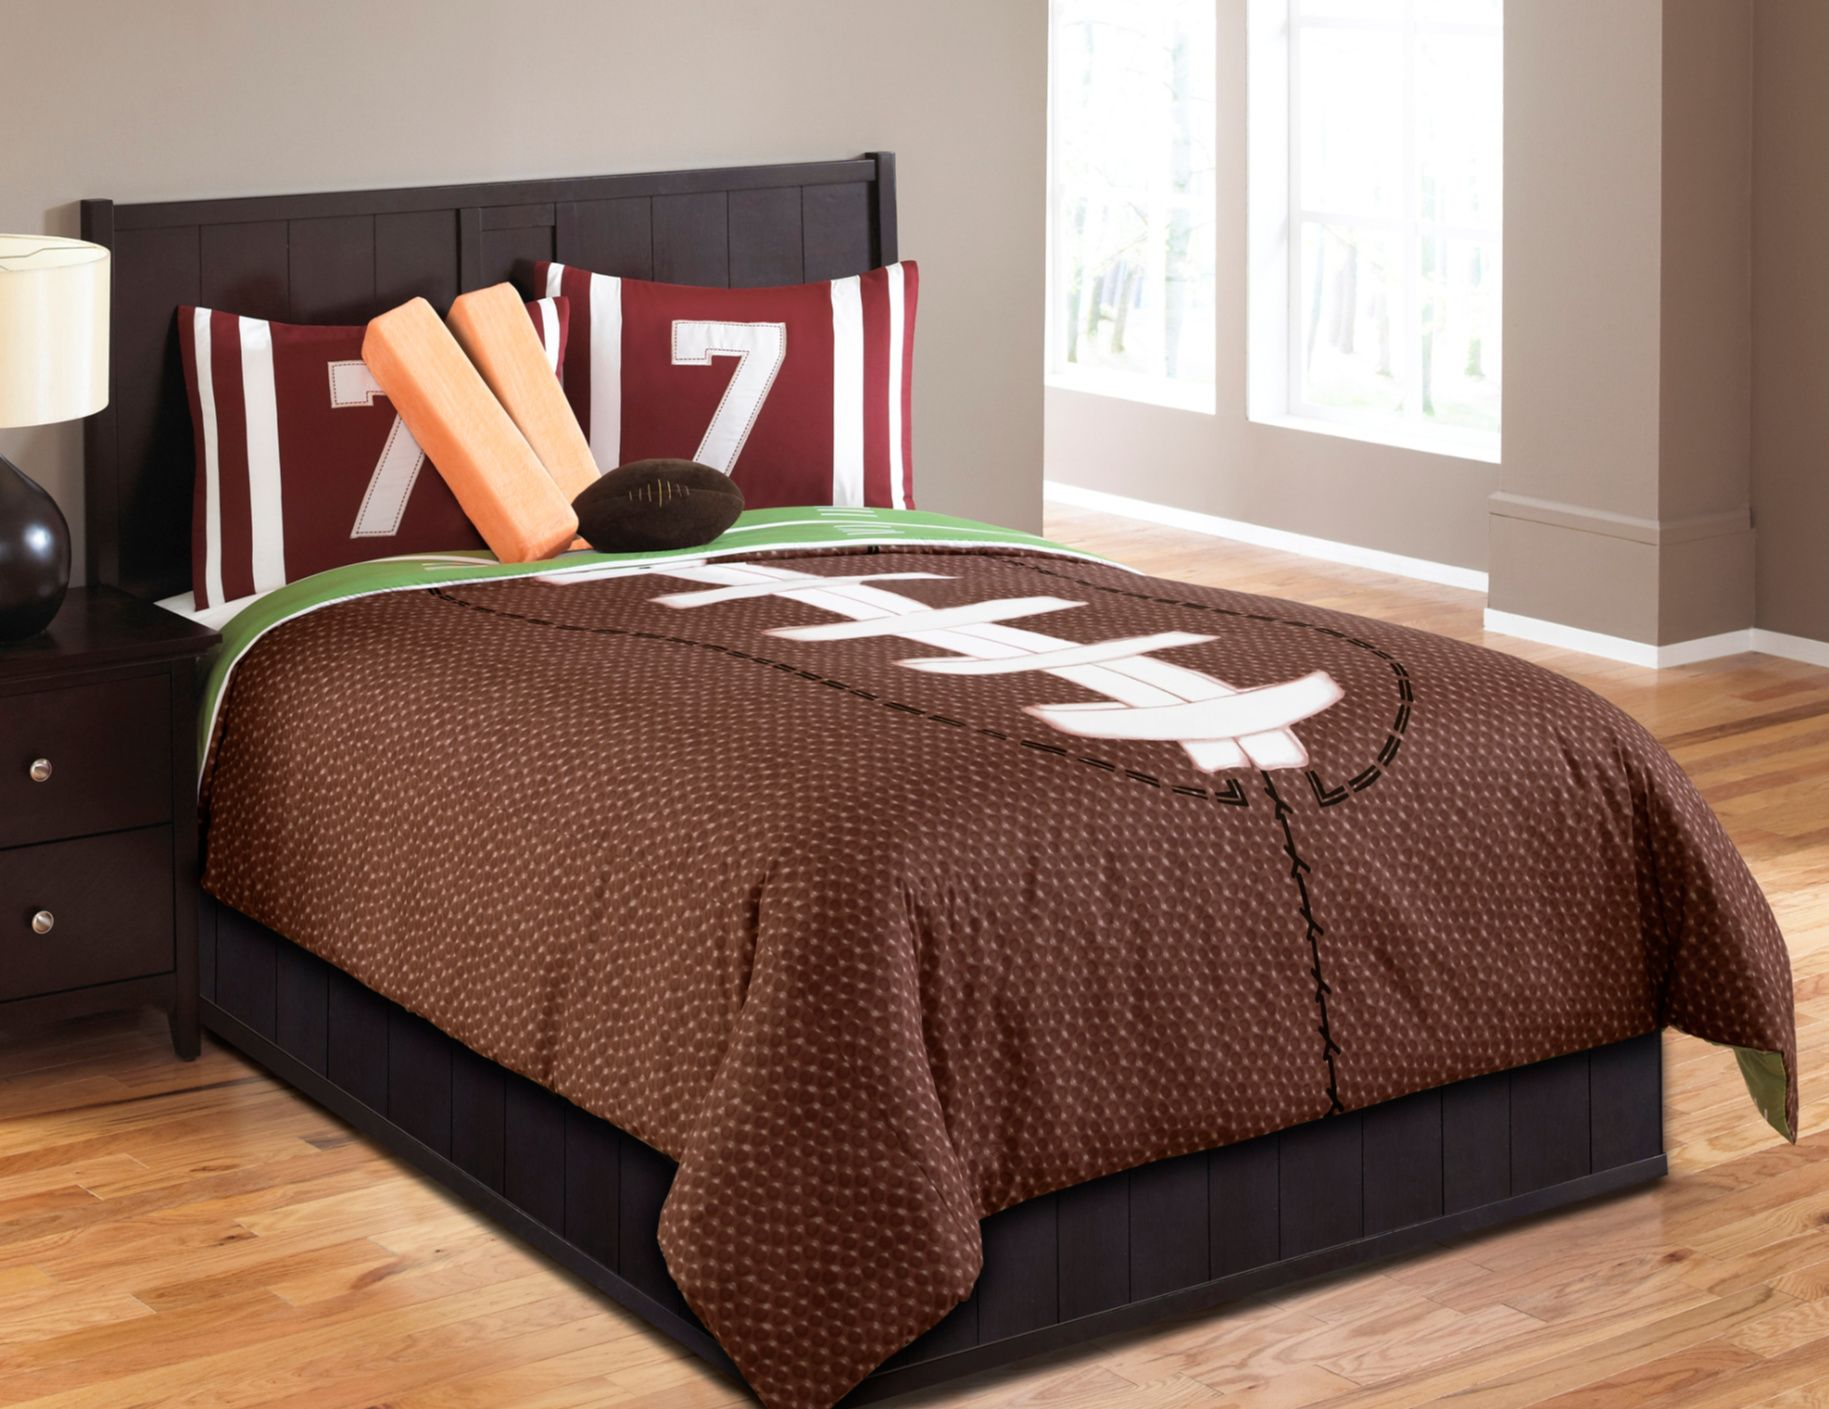 If Your Child Is A Serious Football Fan Let Them Celebrate All Year Around In Their Bedroom With This Field Comforter Sets Sports Bedding Boys Comforter Sets